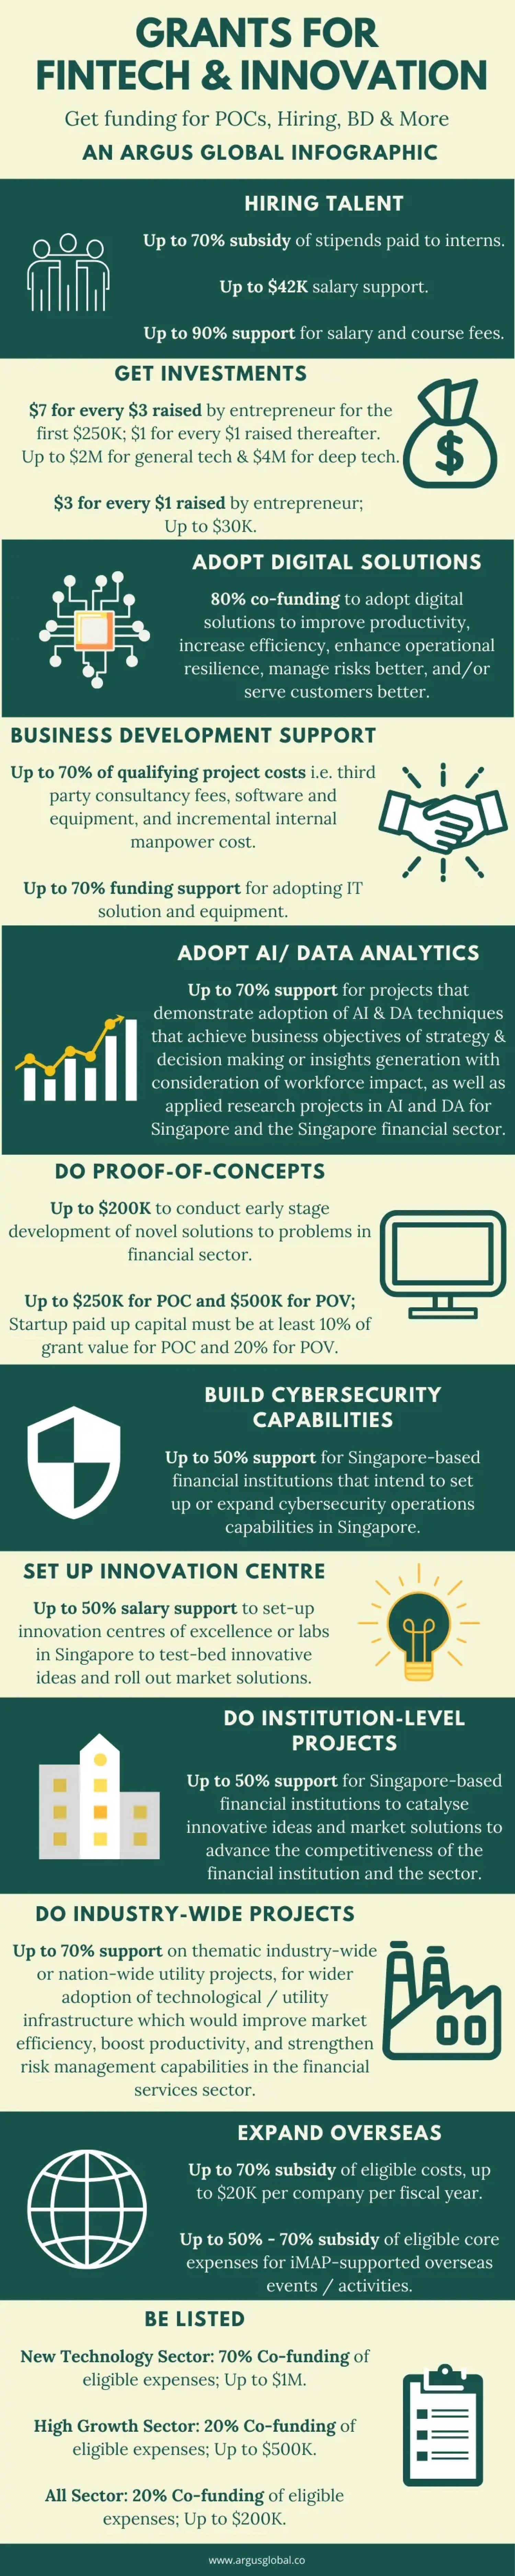 Grants for Fintech & Innovation Infographic